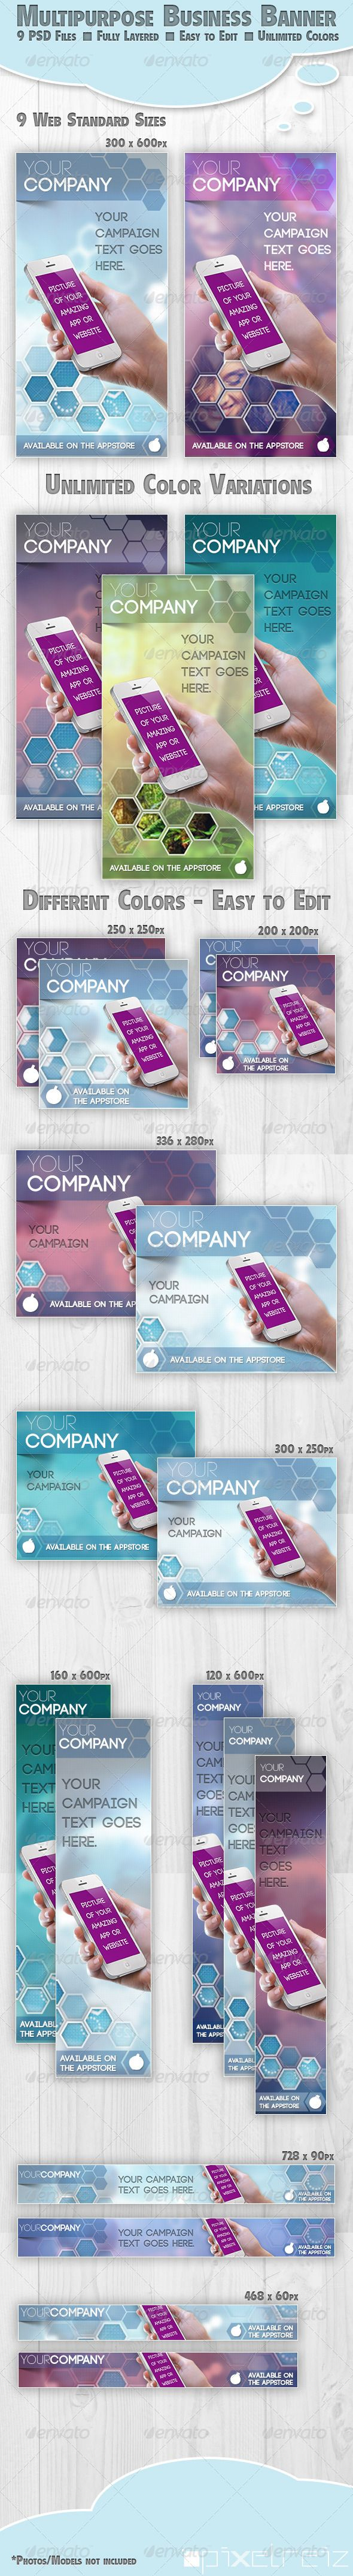 Multipurpose Business Banner Hexagon Template PSD | Buy and Download: http://graphicriver.net/item/multipurpose-business-banner-hexagon/5459400?WT.ac=category_thumb&WT.z_author=pixelreiz&ref=ksioks